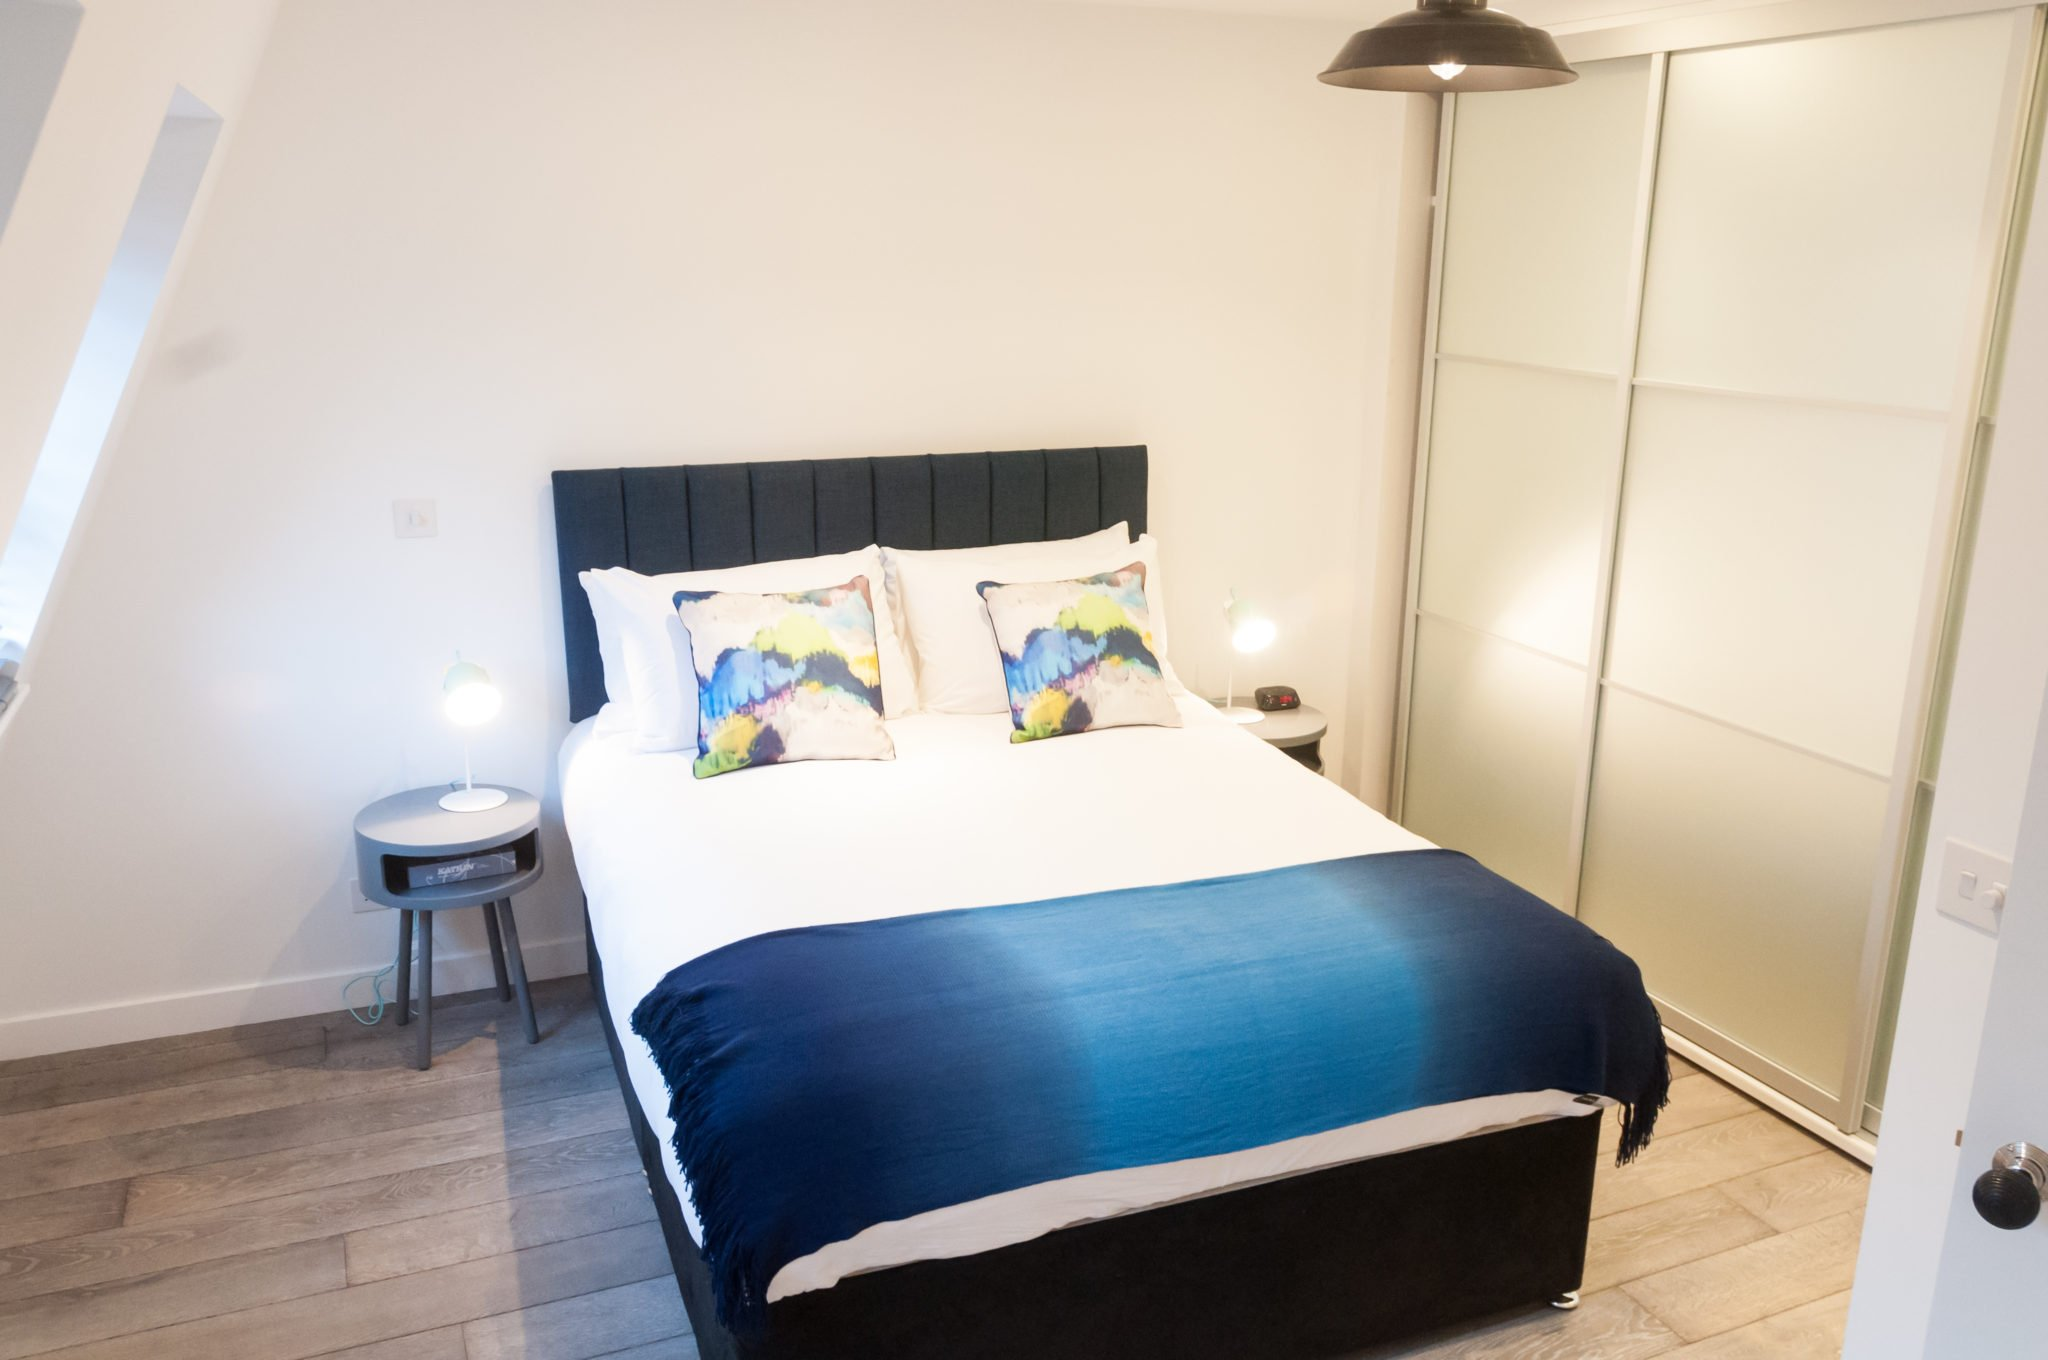 Central-London-Accommodation-Fitzrovia-| Serviced-Apartments-near-Oxford-Street,-The-West-End-&-Soho-|-Luxury-Short-Lets-London-|-BEST-RATES---BOOK-NOW!!-Urban-Stay